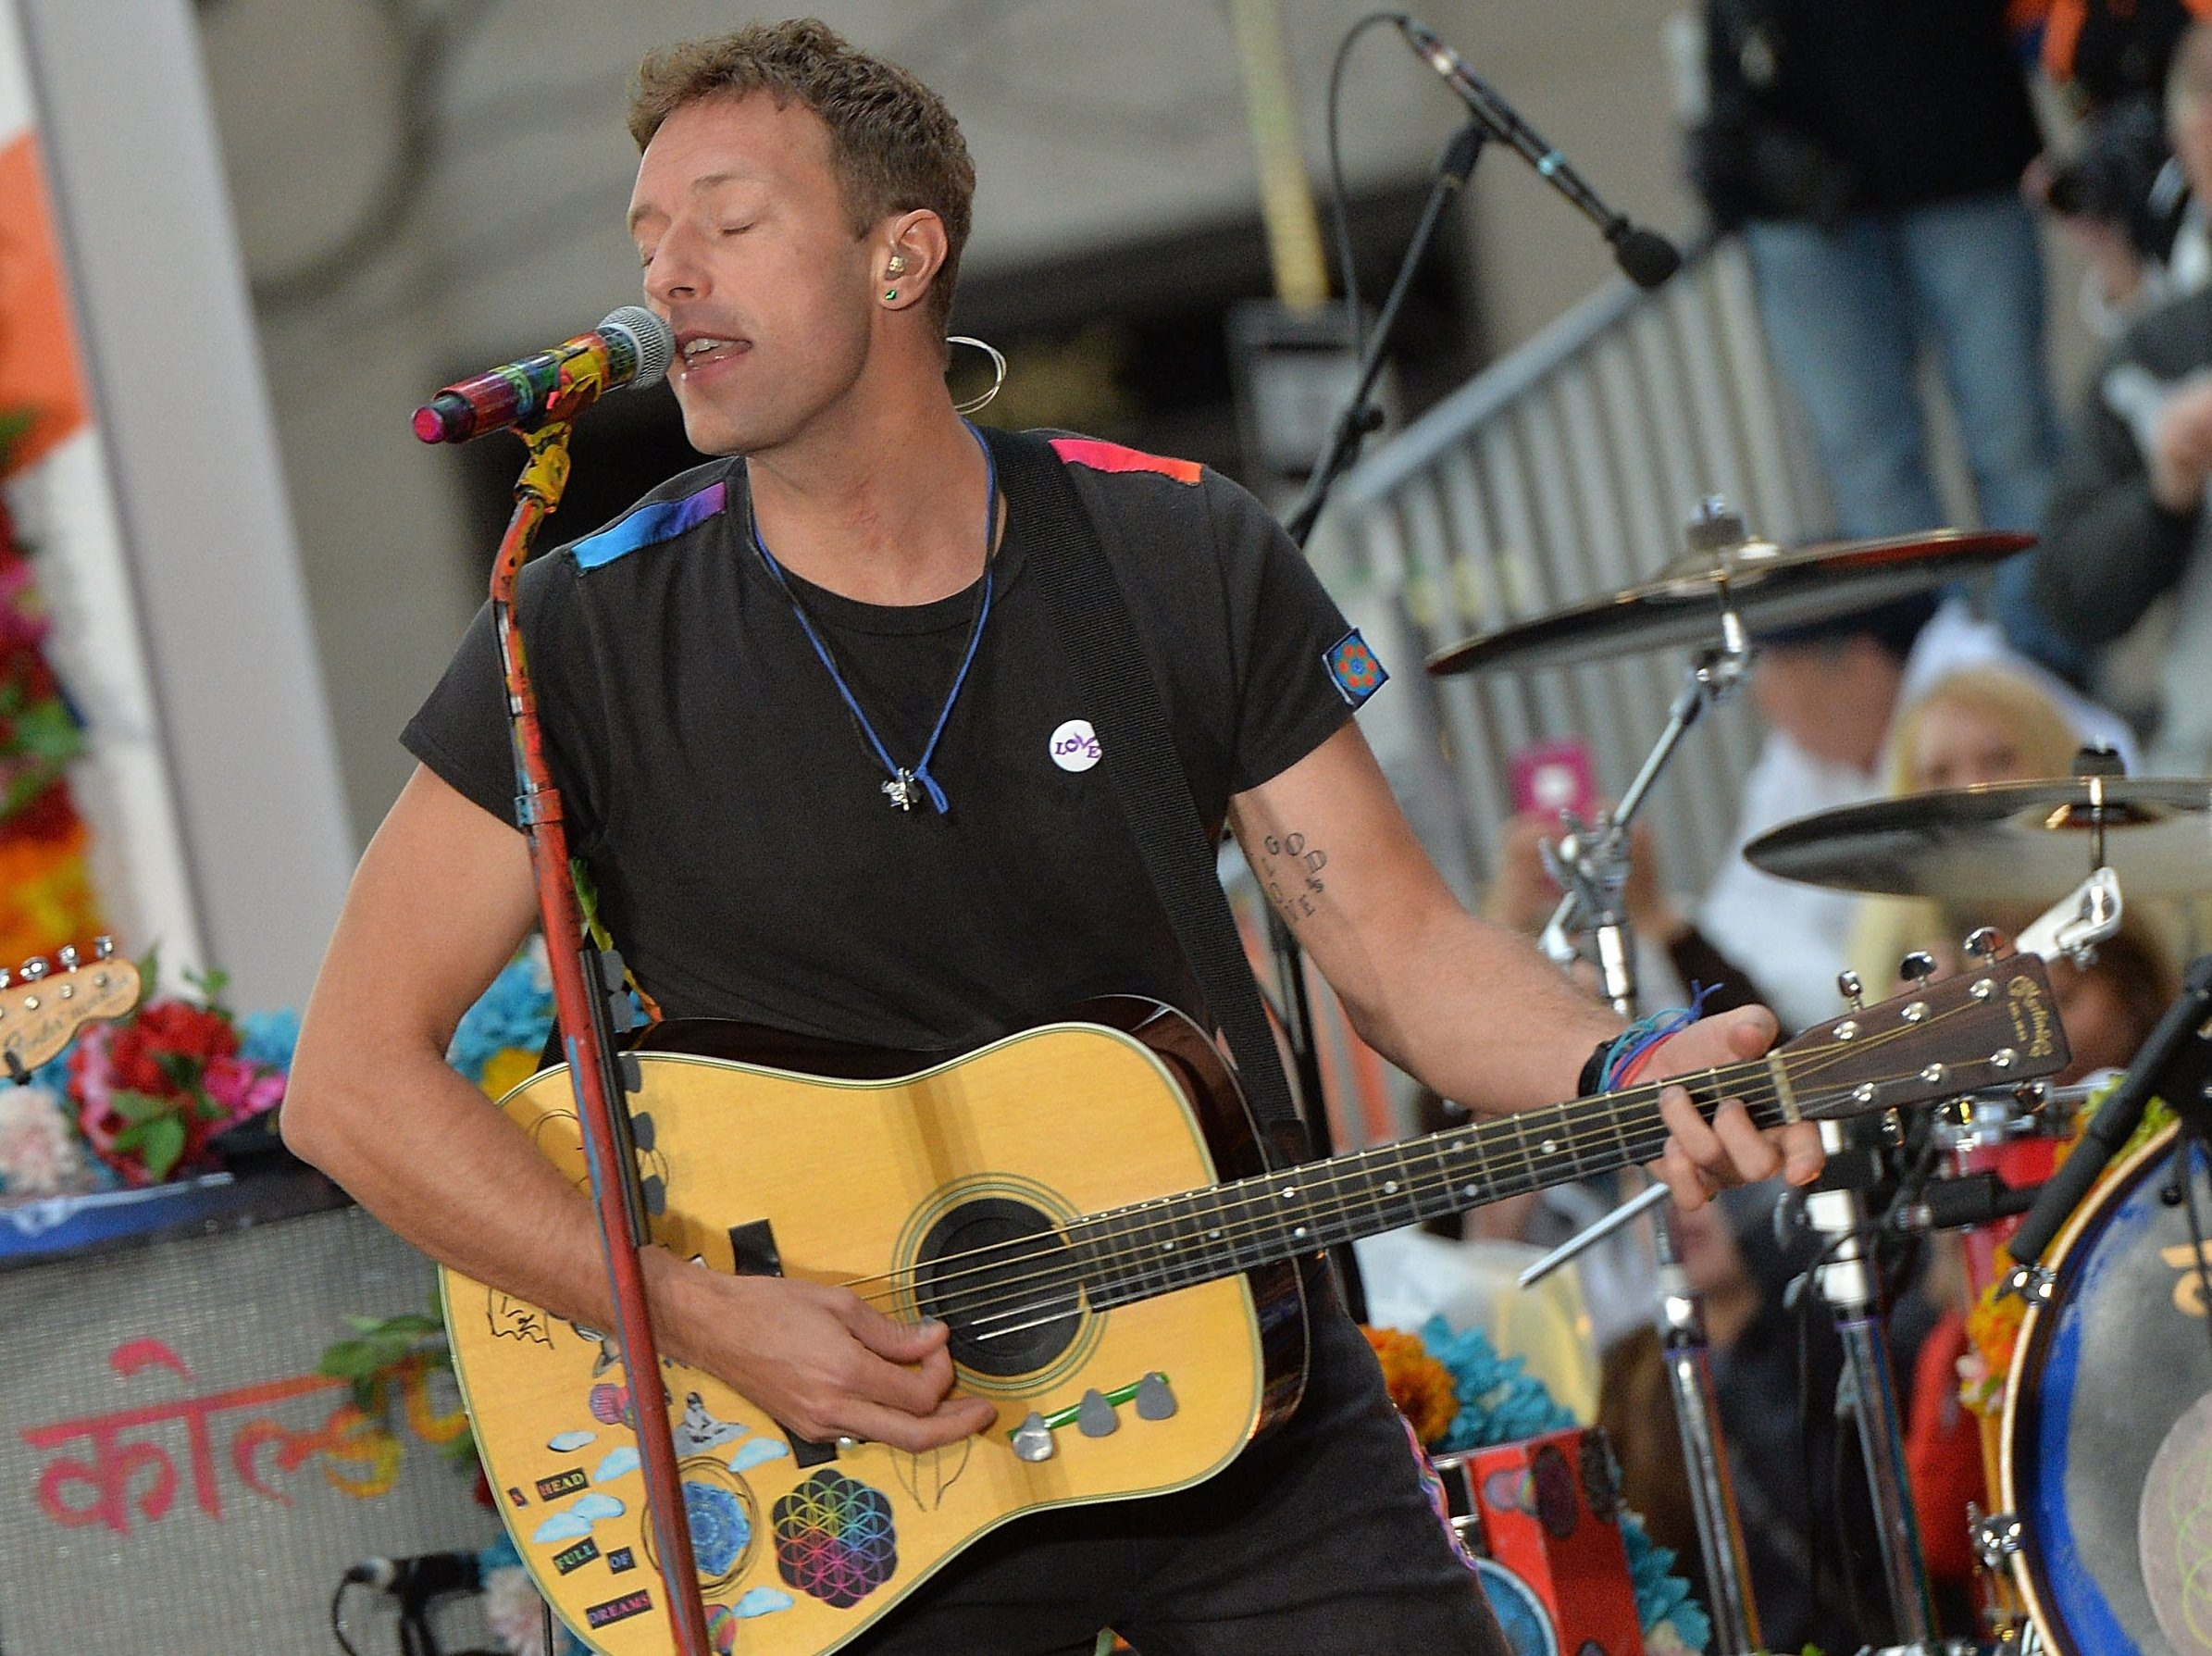 Chris Martin and Coldplay will perform Aug. 1 in First Niagara Center. General public on-sale for tickets to the show starts Friday. (Getty Images)